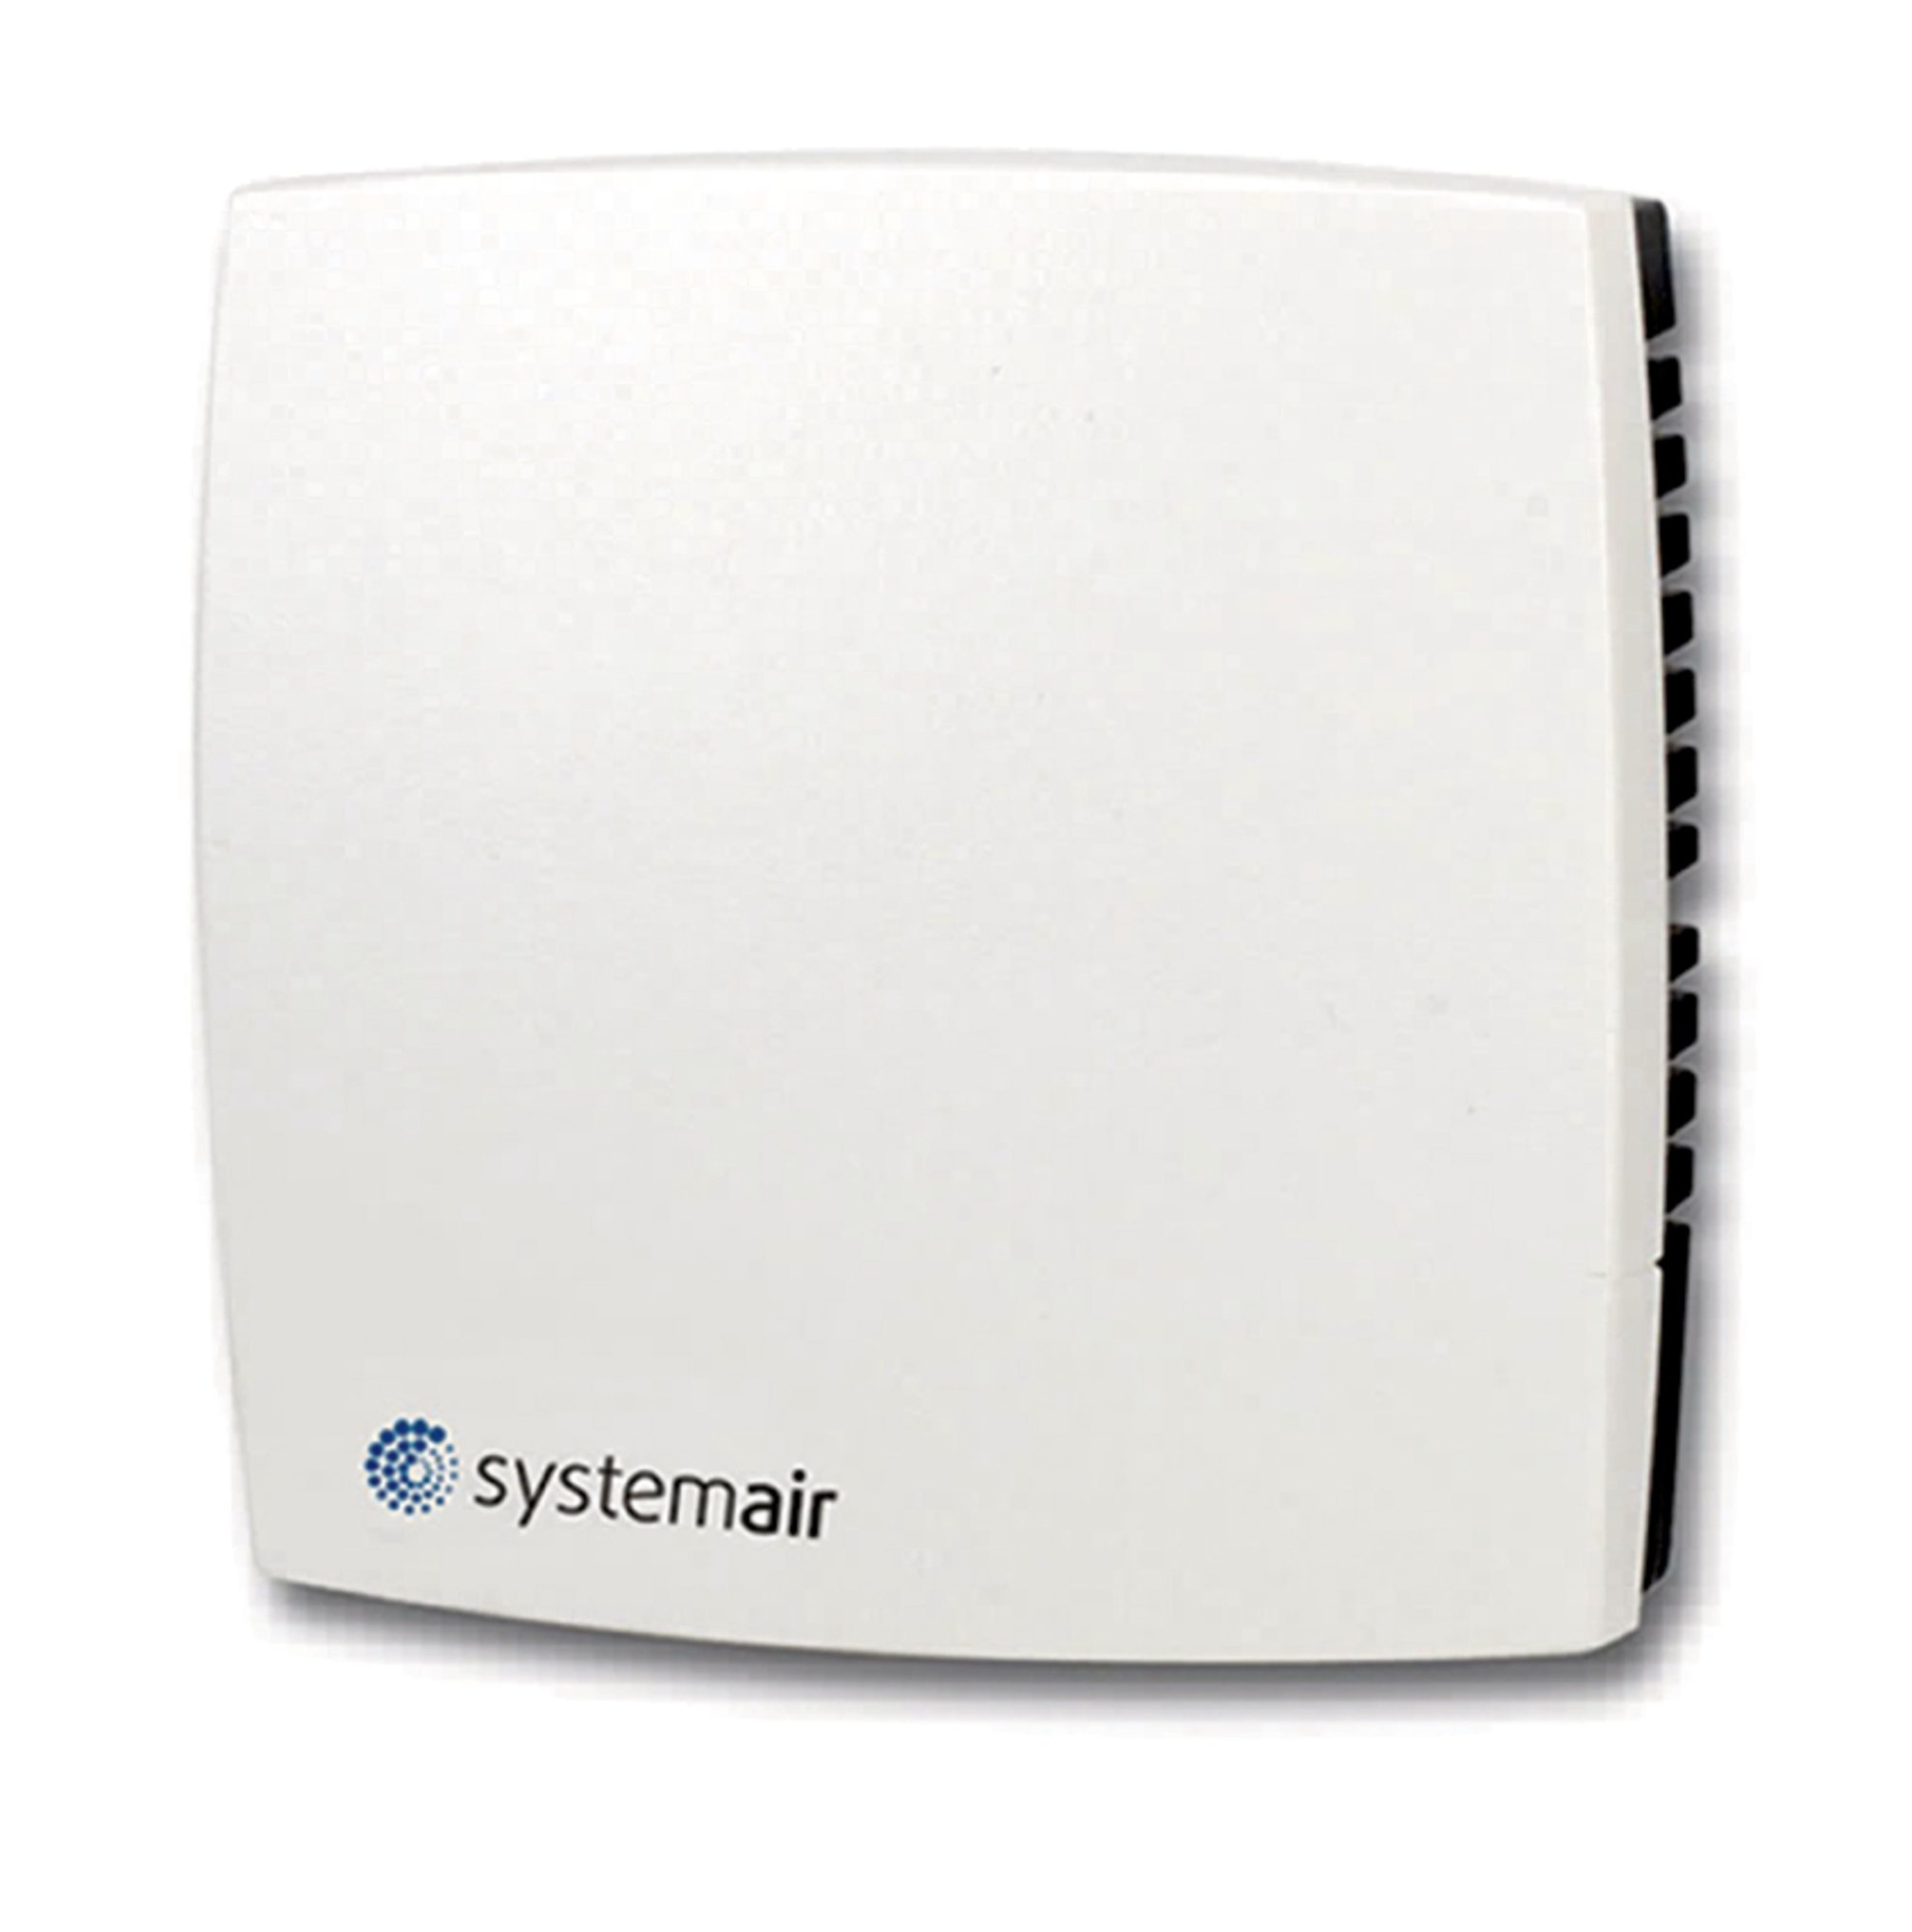 TG-R530 - Systemair